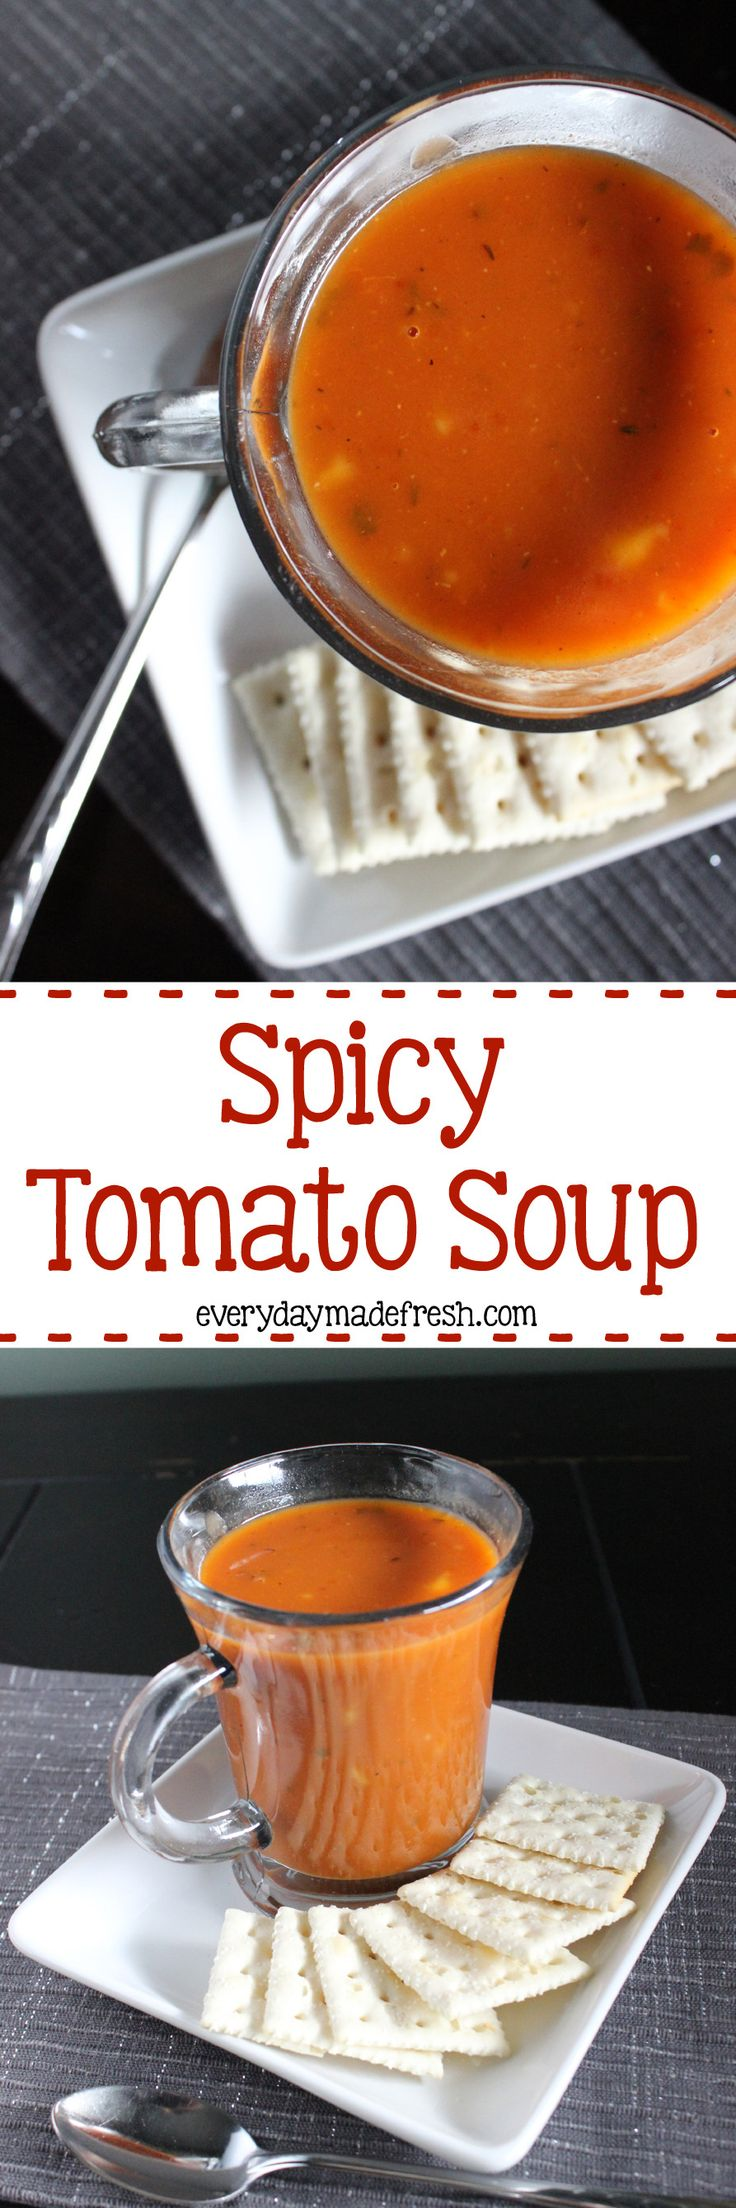 Spicy Tomato Soup | Recipe | Tomato Soups, Be Ready and Spicy